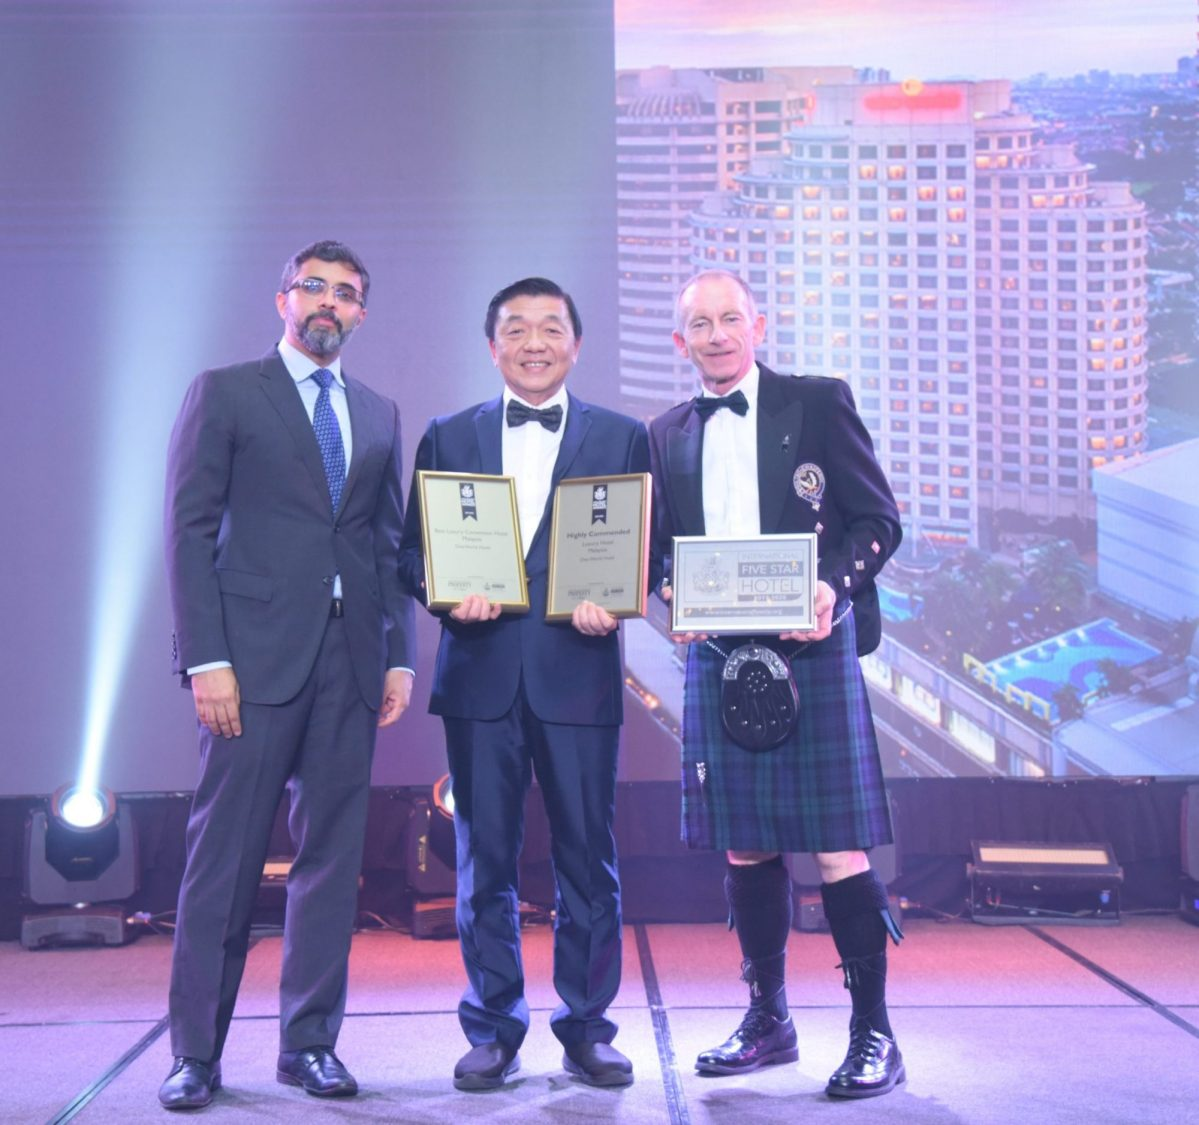 One World Hotel Petaling Jaya Wins Two Prestigious Awards At The Asia Pacific Hotel Awards 2019-2020